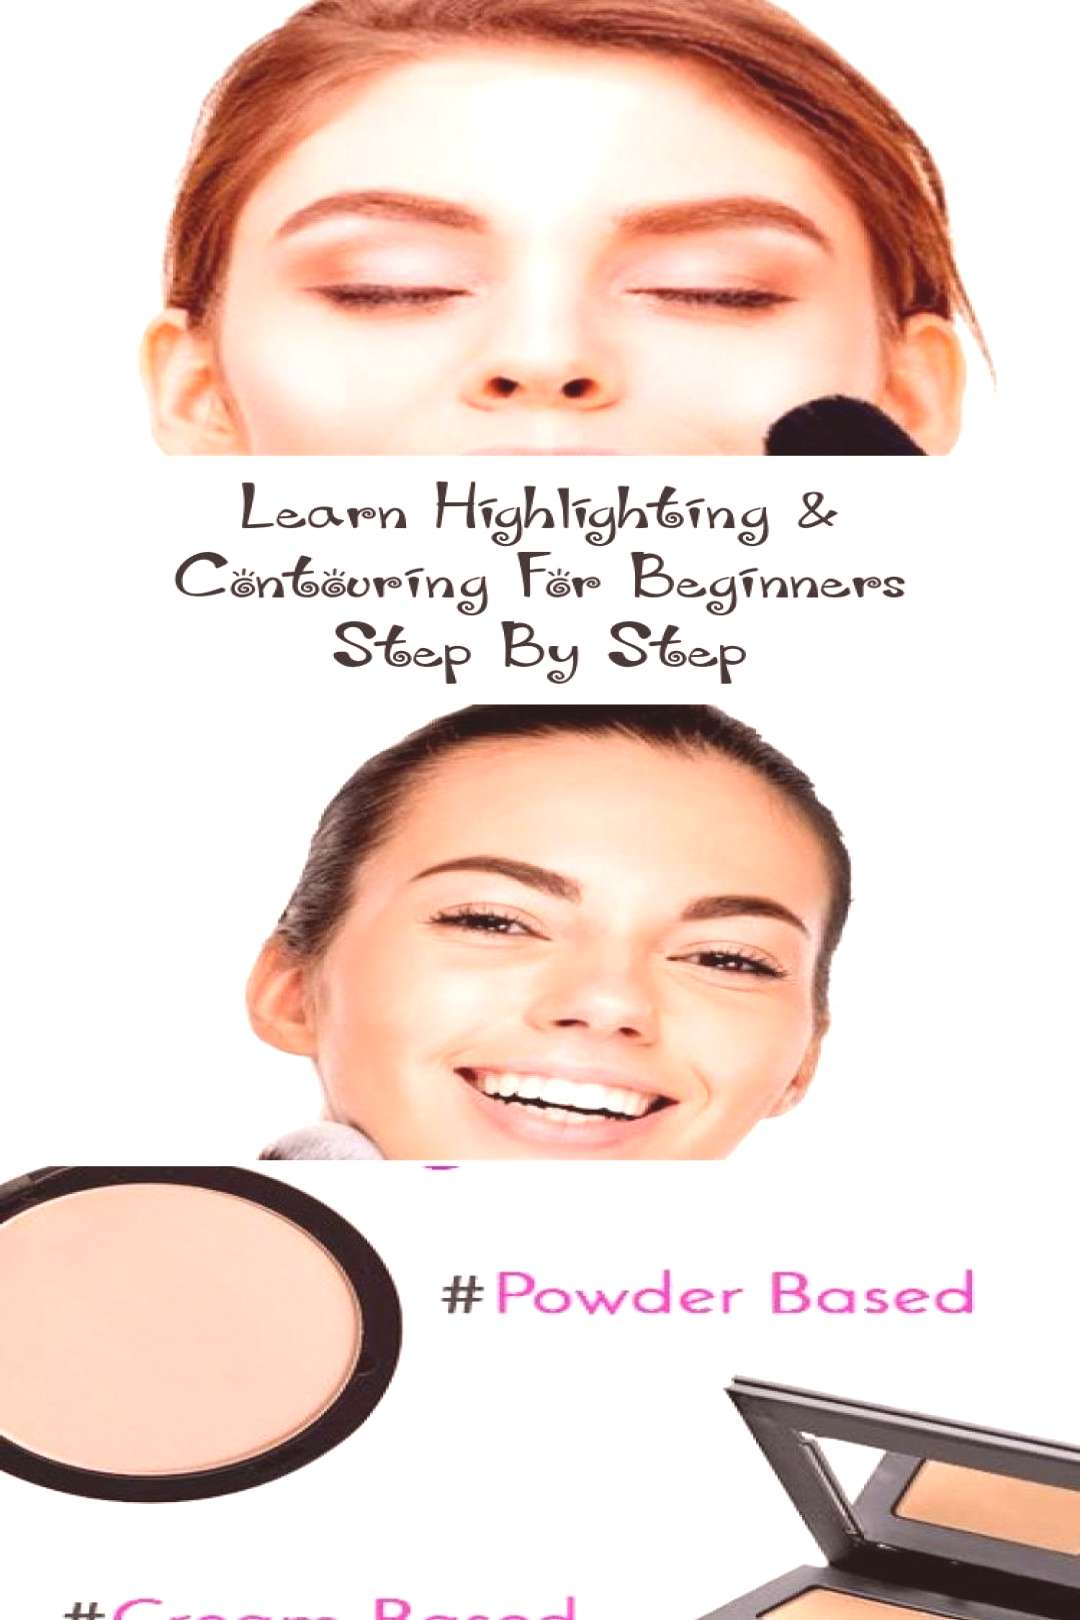 Learn Highlighting amp Contouring For Beginners Step By Step… - MAKEUP - Highlighting,contouring f